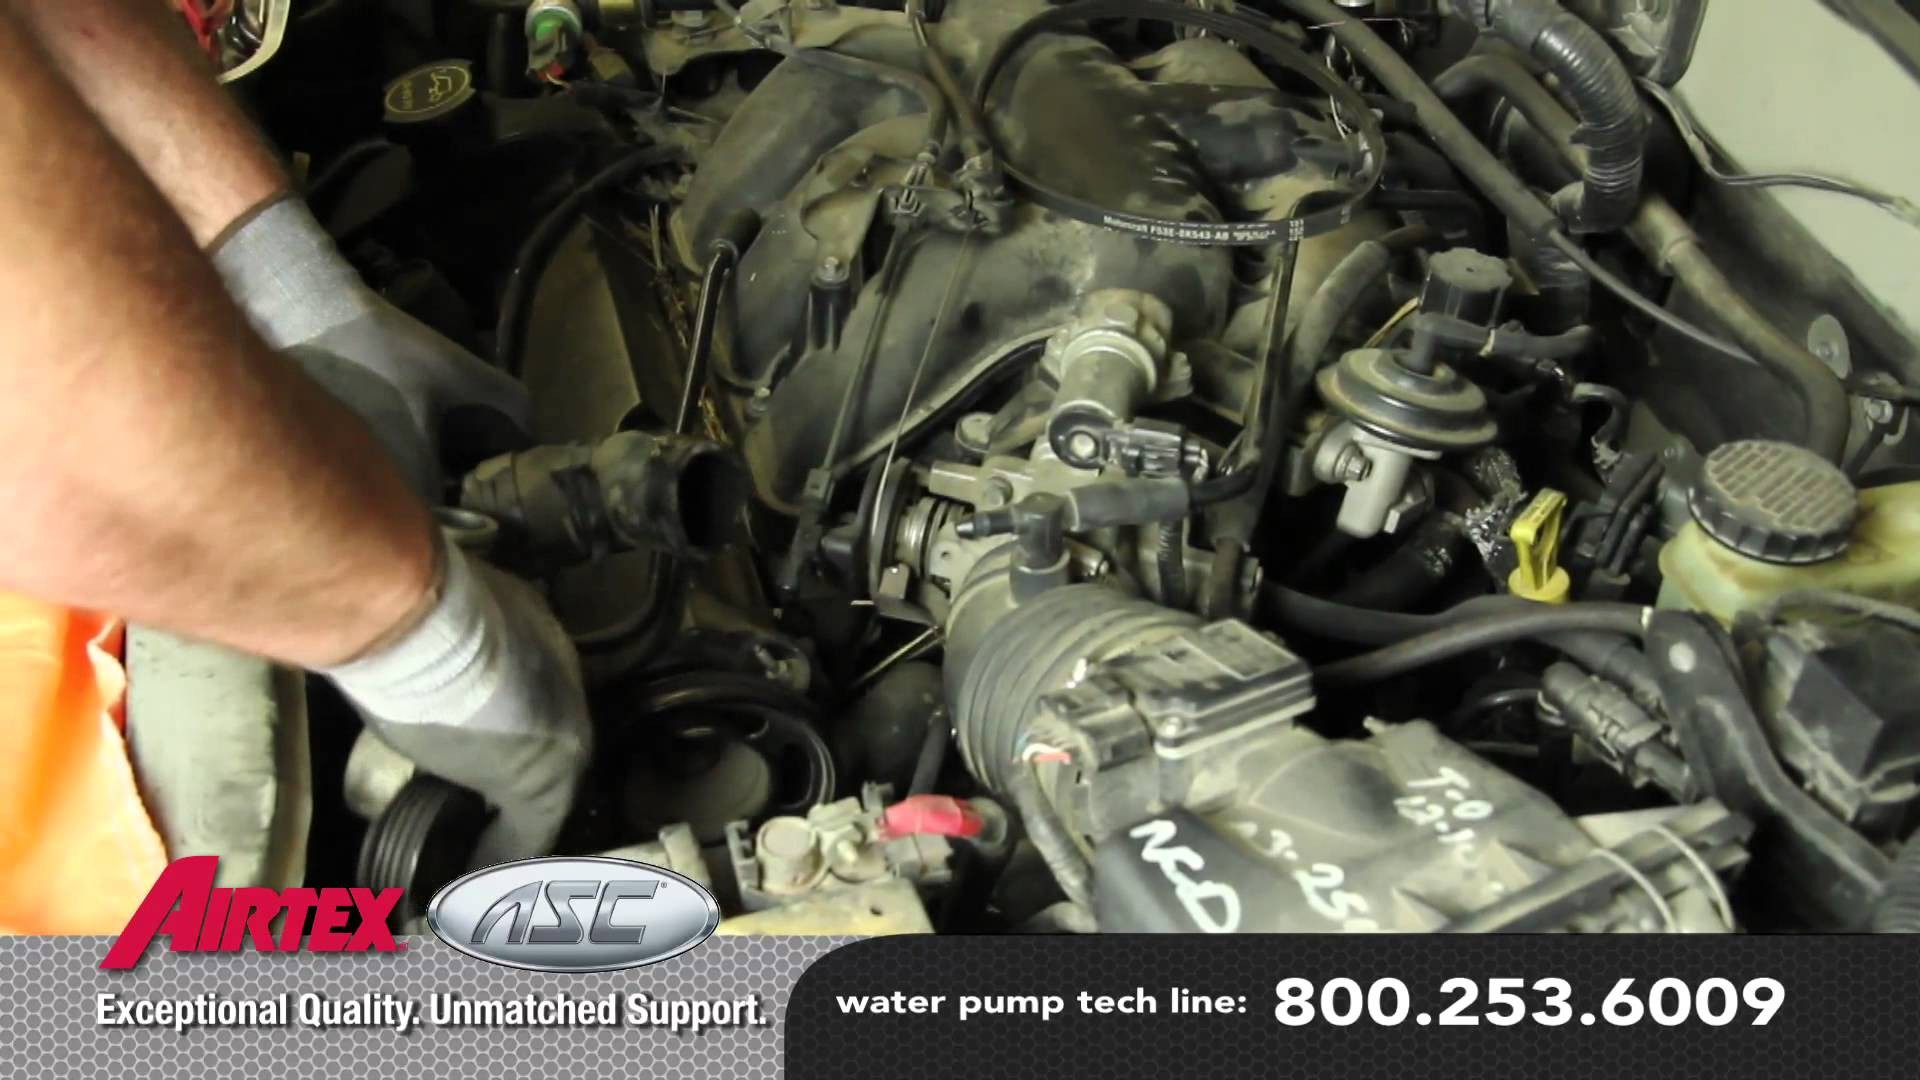 2000 Mercury Sable Engine Diagram How to Install A Water Pump ford 3 0l V6 Wp 9035 Aw4091 Of 2000 Mercury Sable Engine Diagram How to Install Replace Alternator ford Taurus V63 0l 00 07 1aauto